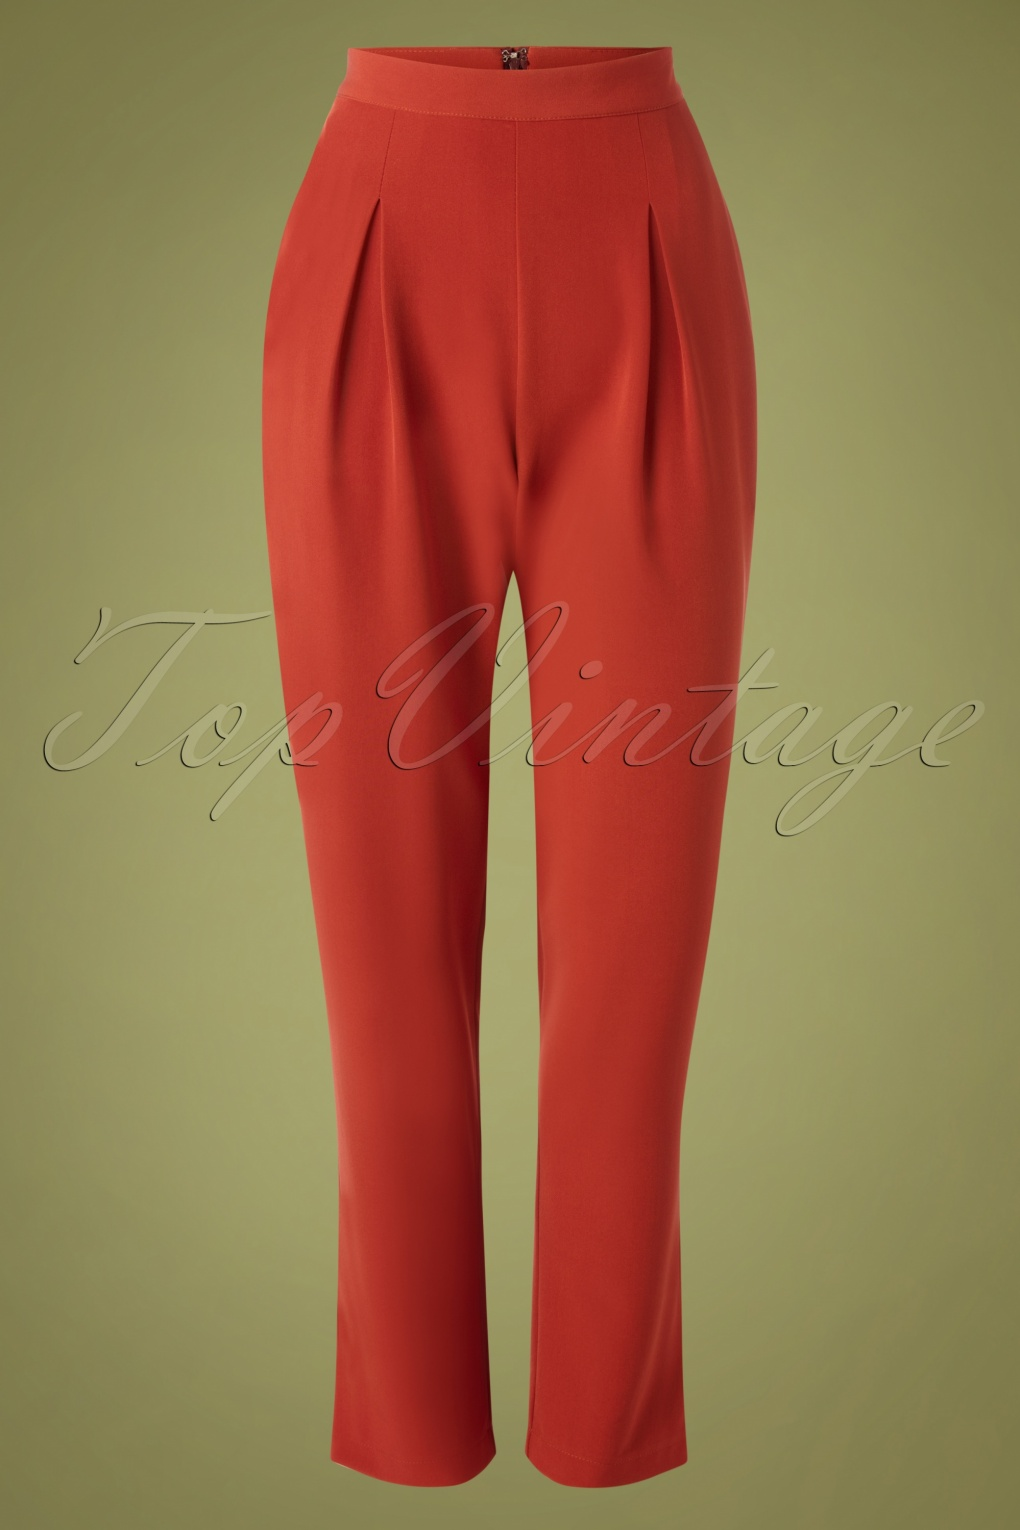 1960s Style Dresses, Clothing, Shoes UK 50s Wear Me Everywhere Trousers in Brick Orange £30.35 AT vintagedancer.com